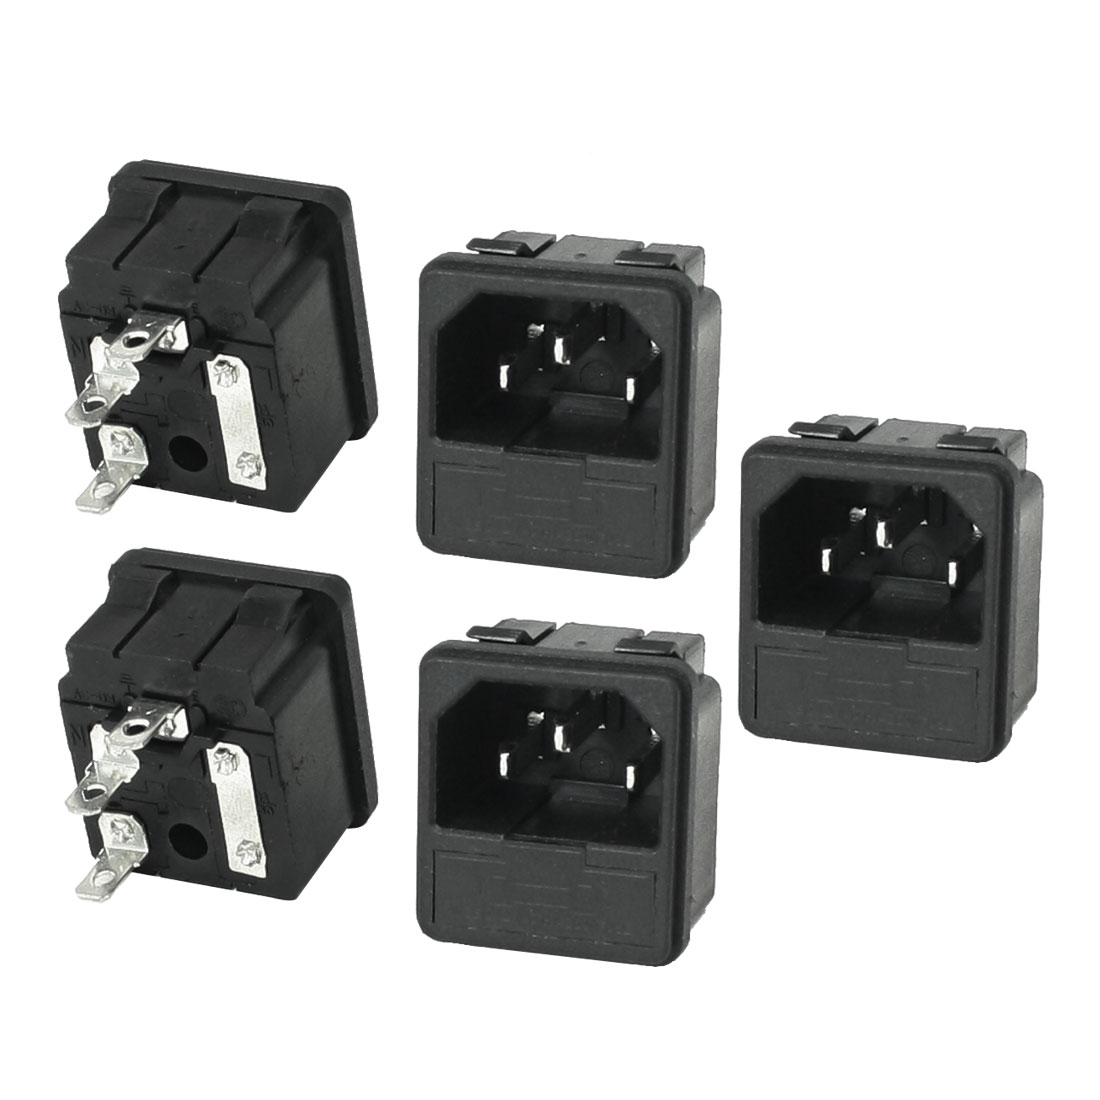 5 Pcs Panel Mounted 3P C14 Inlet Male Power Plug 10A AC 250V